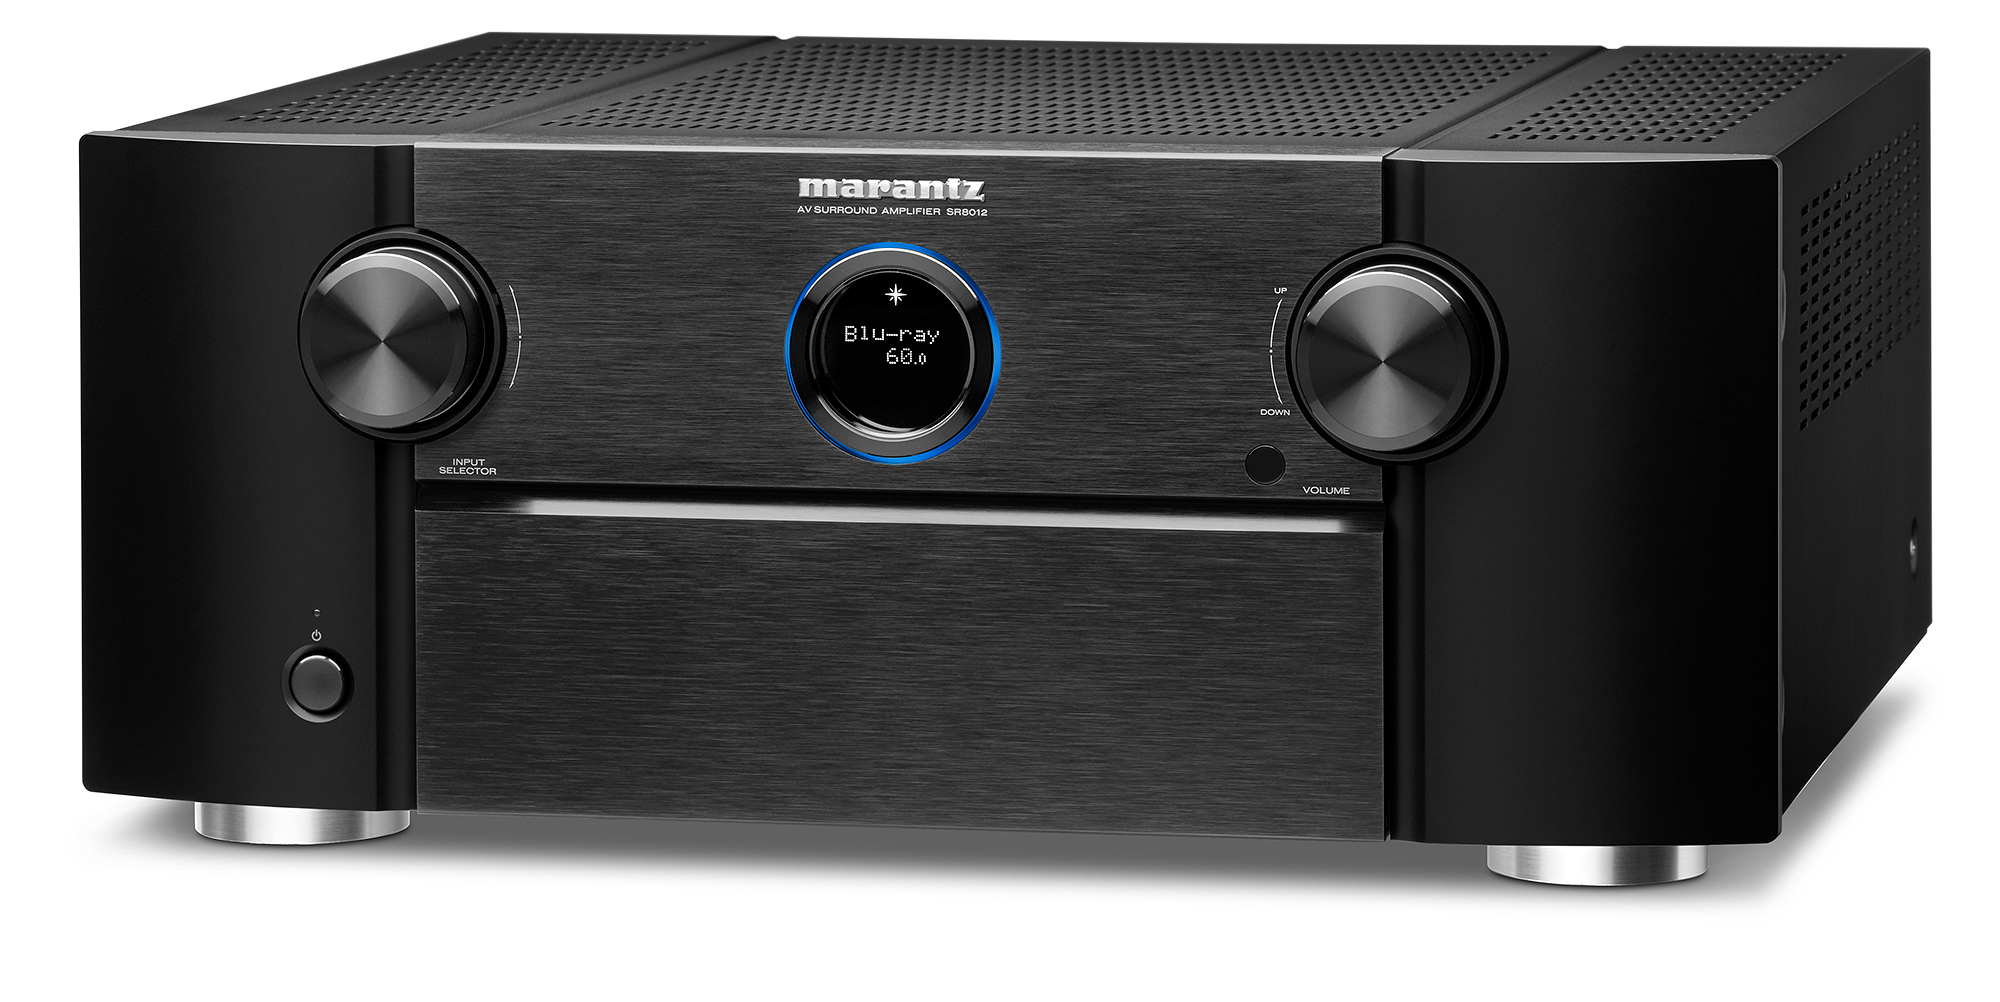 marantz pr sente son premier ampli audio vid o 11 2 le sr8012. Black Bedroom Furniture Sets. Home Design Ideas